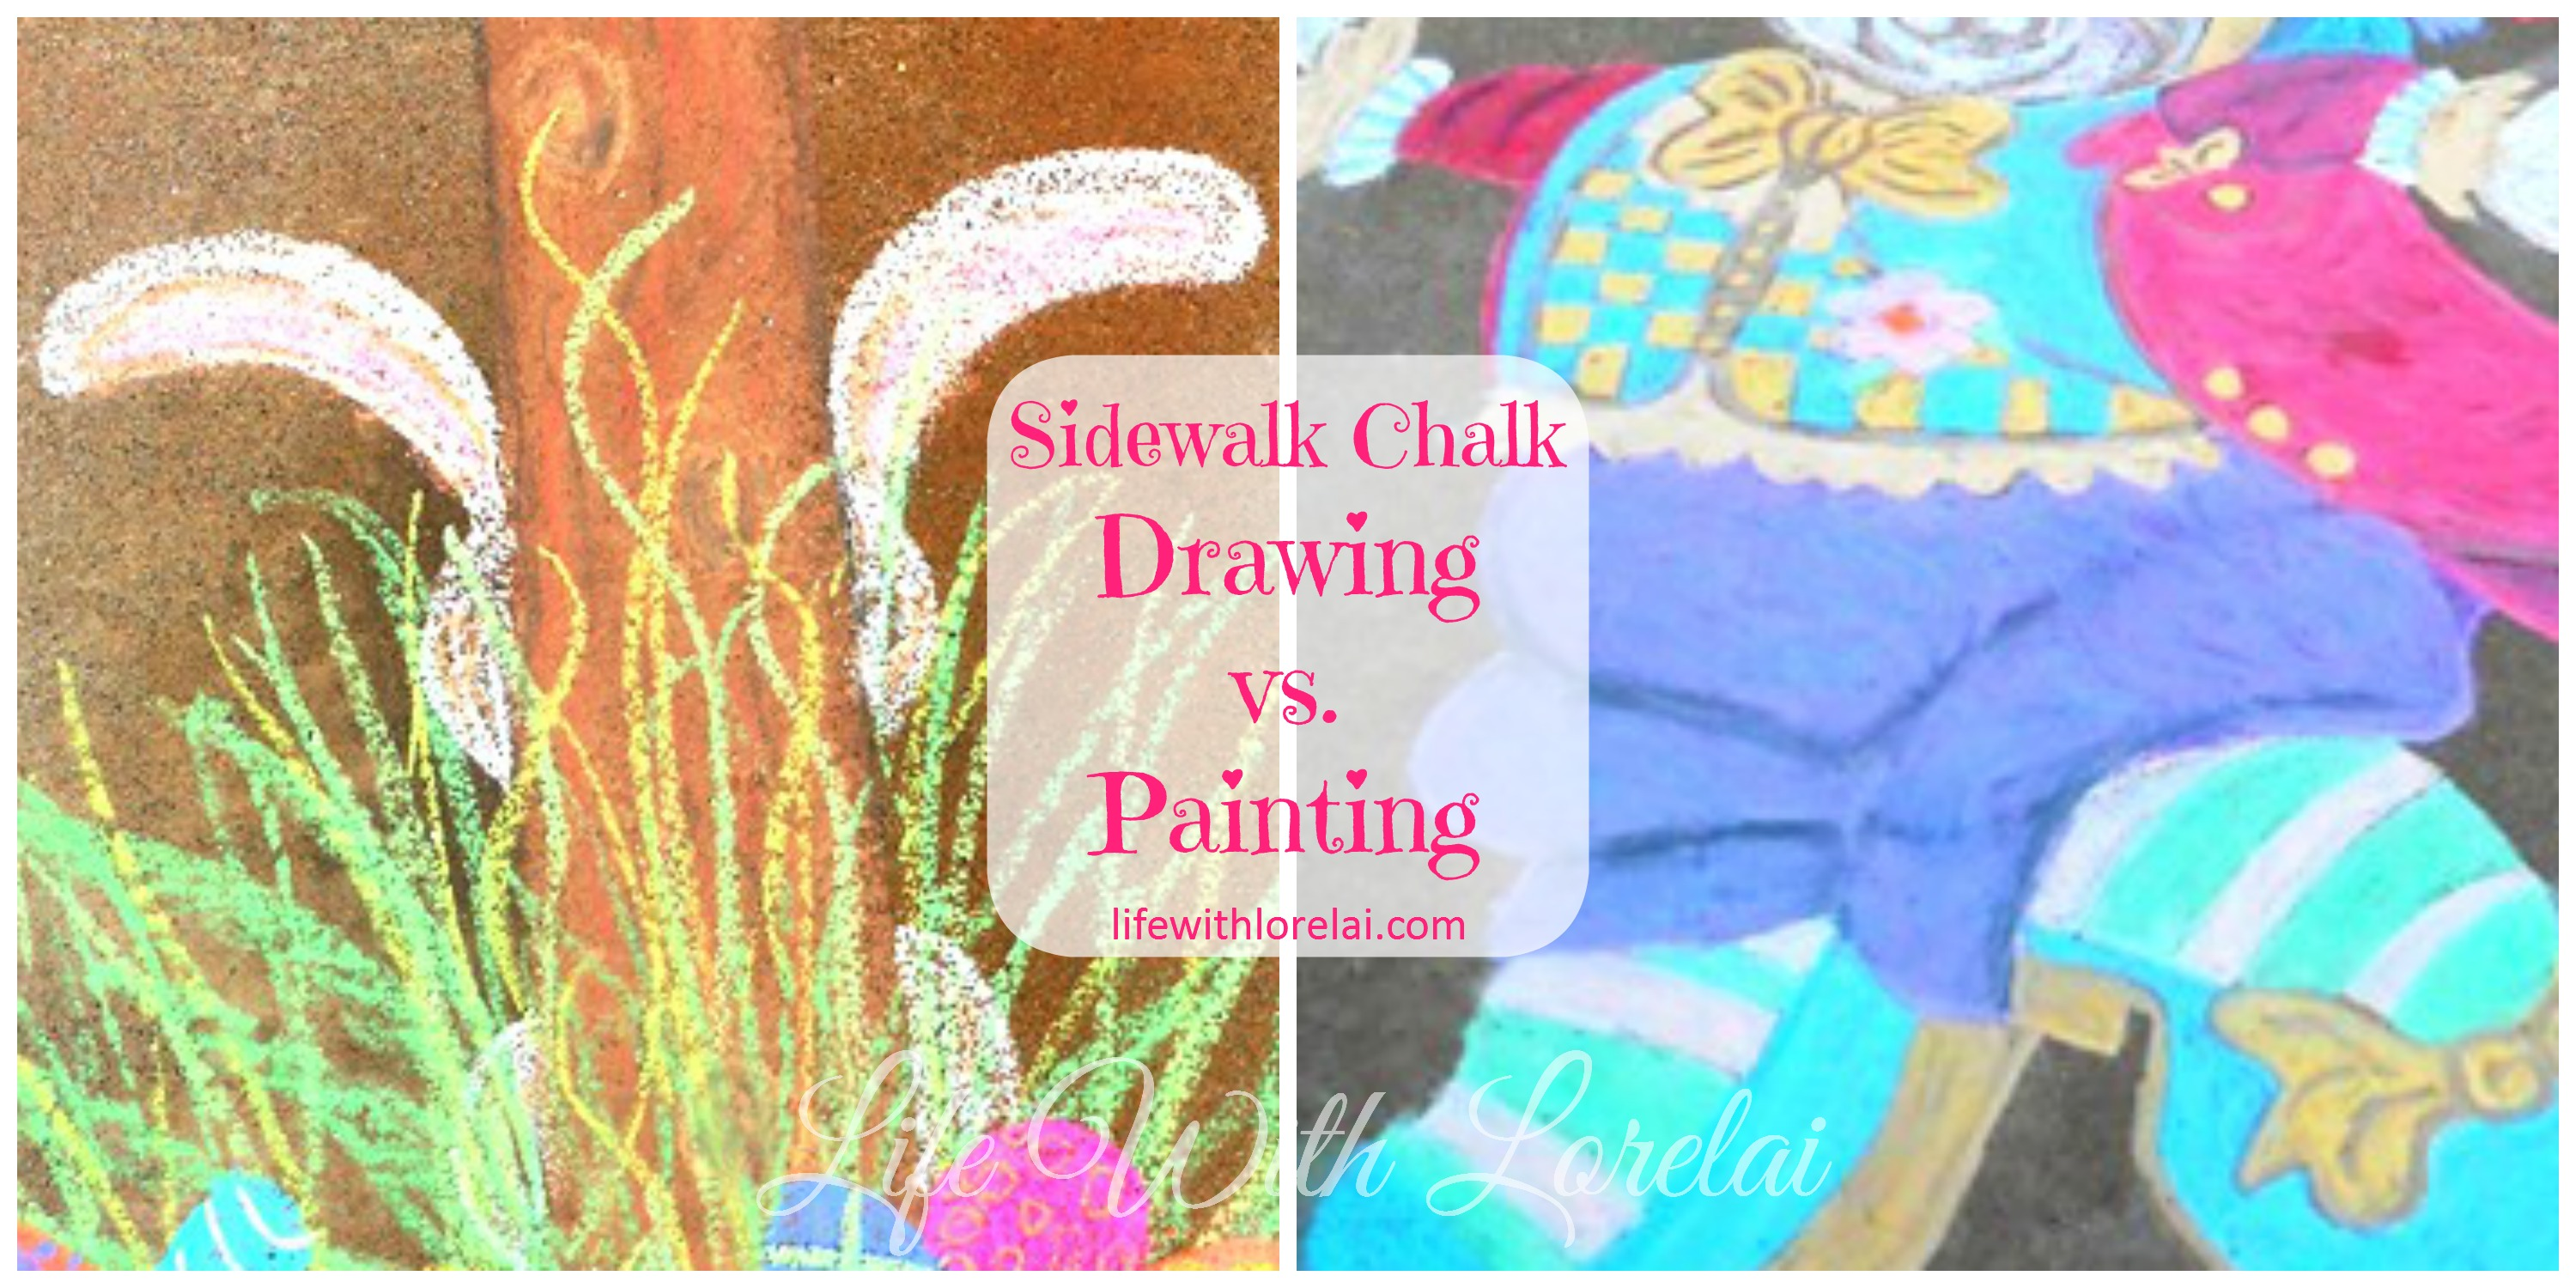 Sidewalk Chalk - Drawing vs Painting - Life With Lorelai